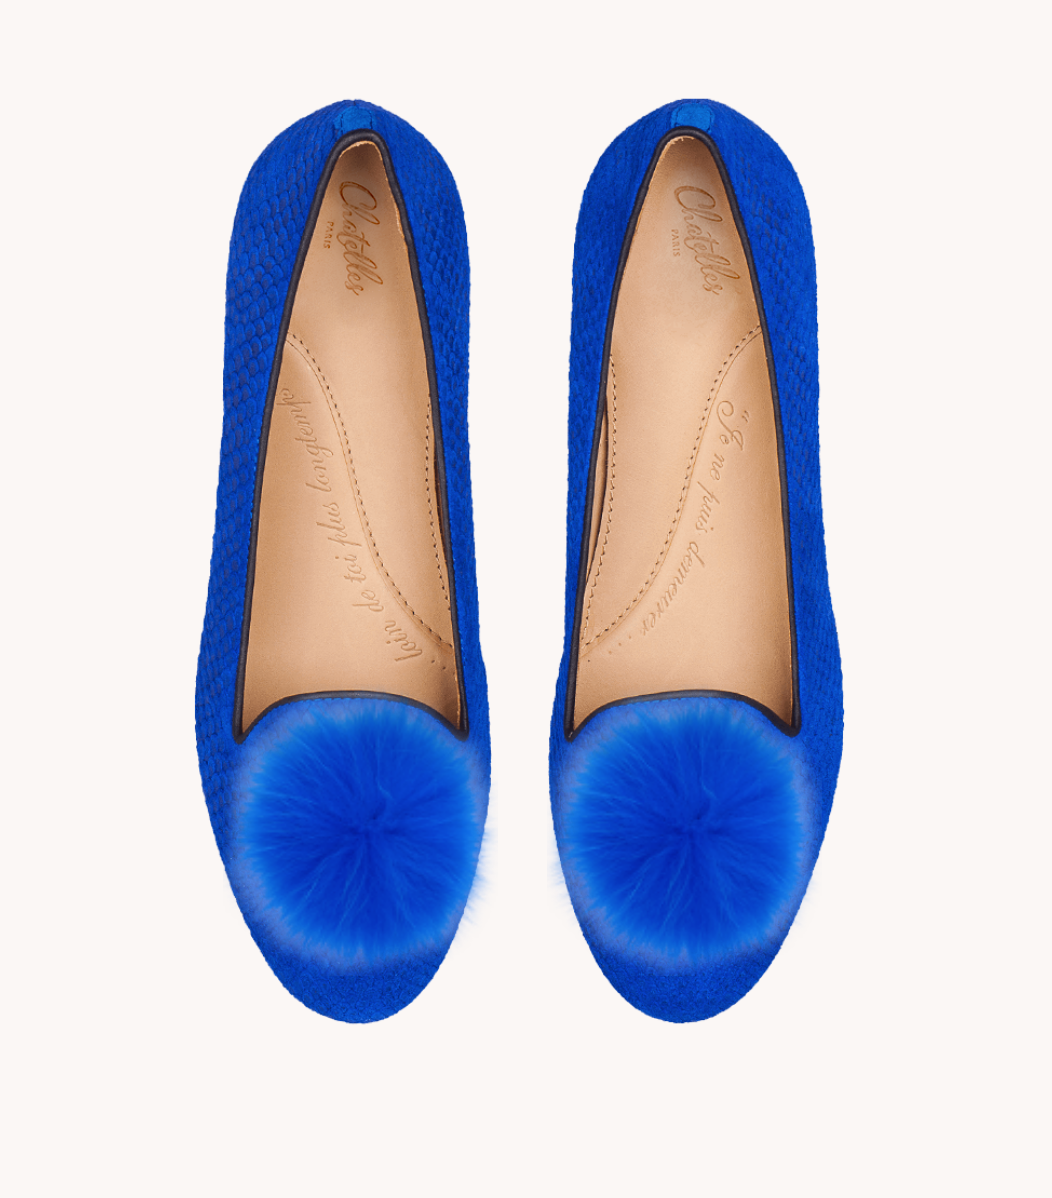 Chatelle- Honore Royal Blue Fishscaled Leather Slipper Flat